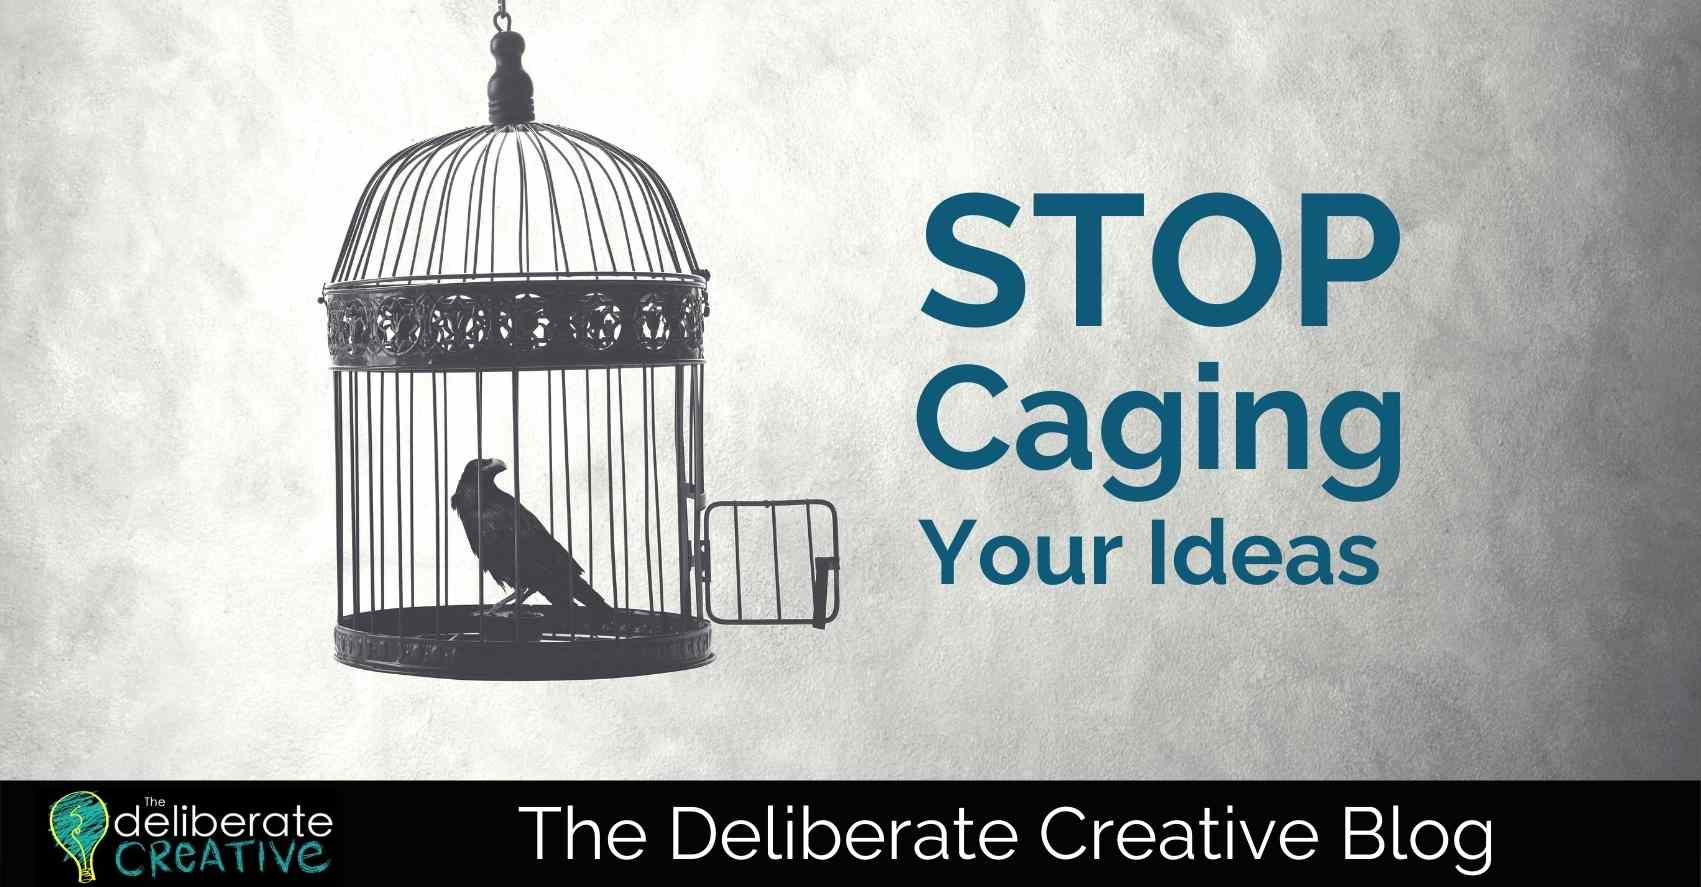 The Deliberate Creative Blog: Stop Caging Your Ideas